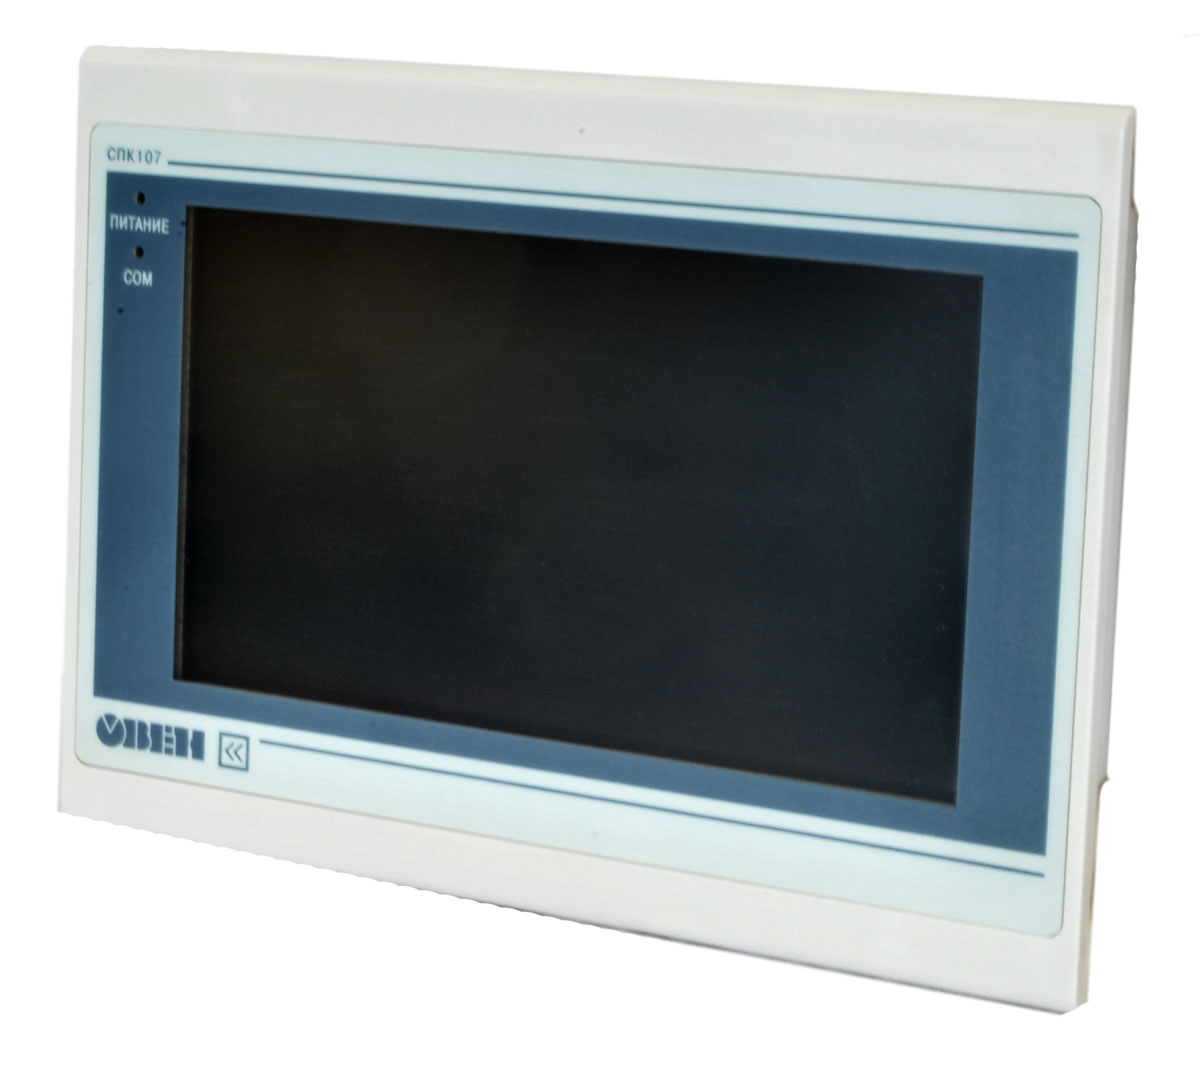 SPK105 / 107 / 110 PLC with integrated HMI